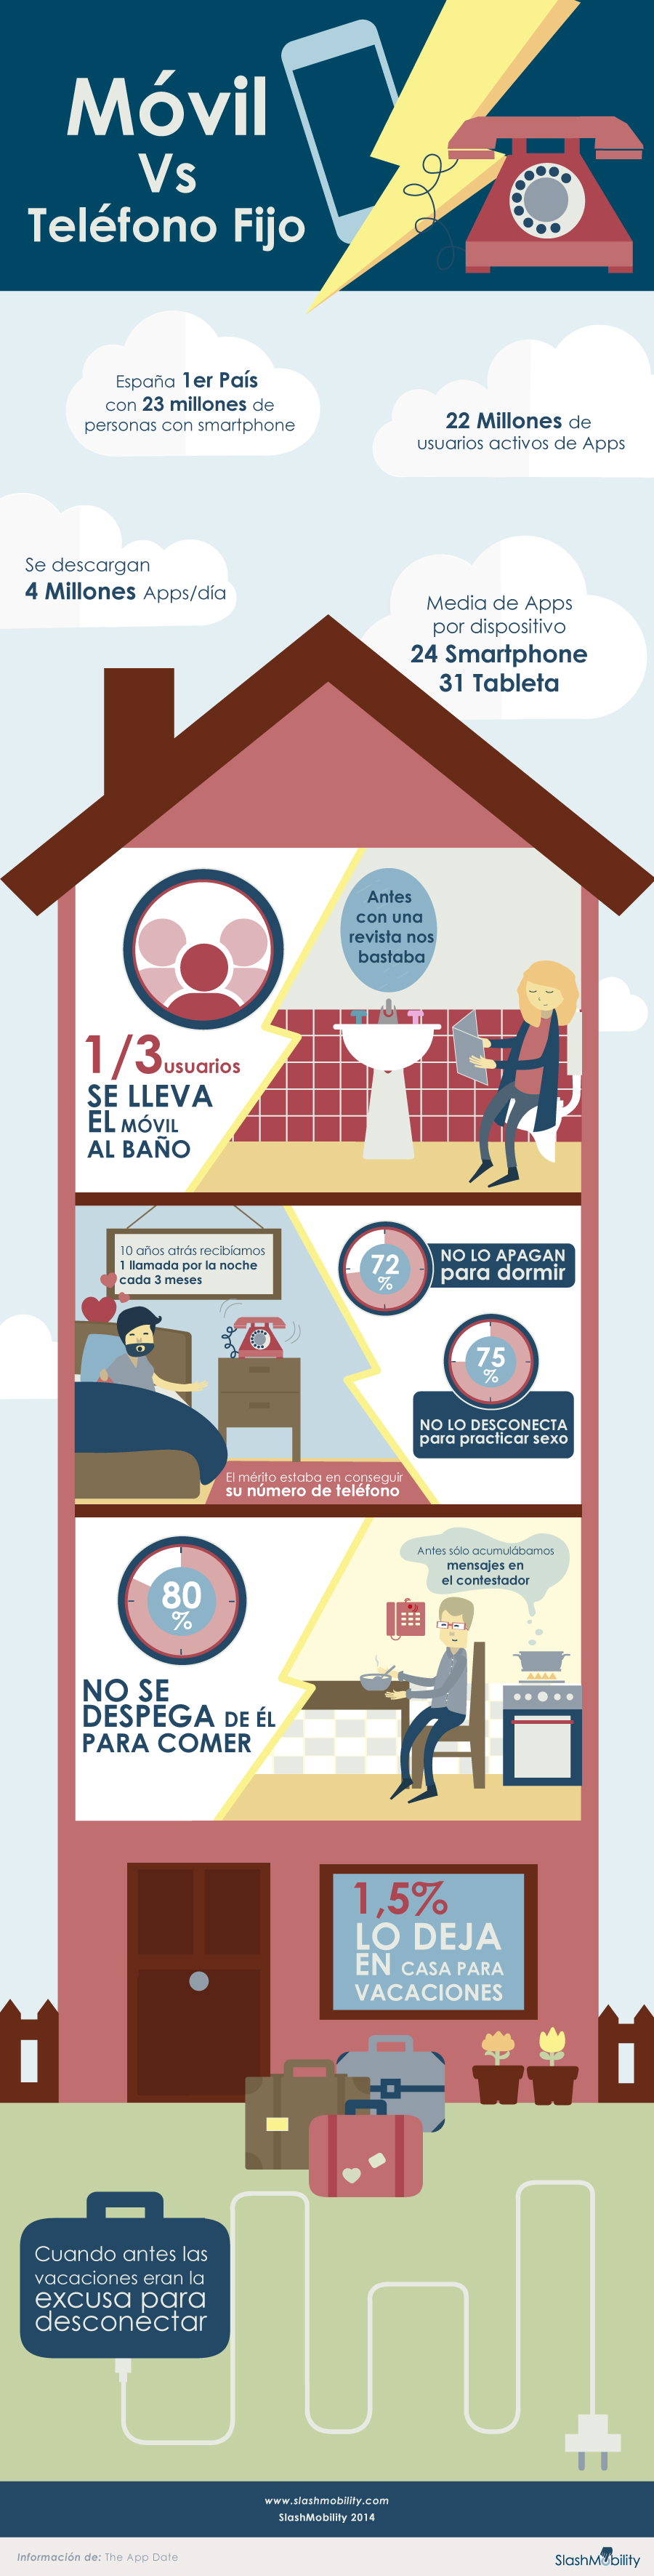 infografia_movilvsfijo